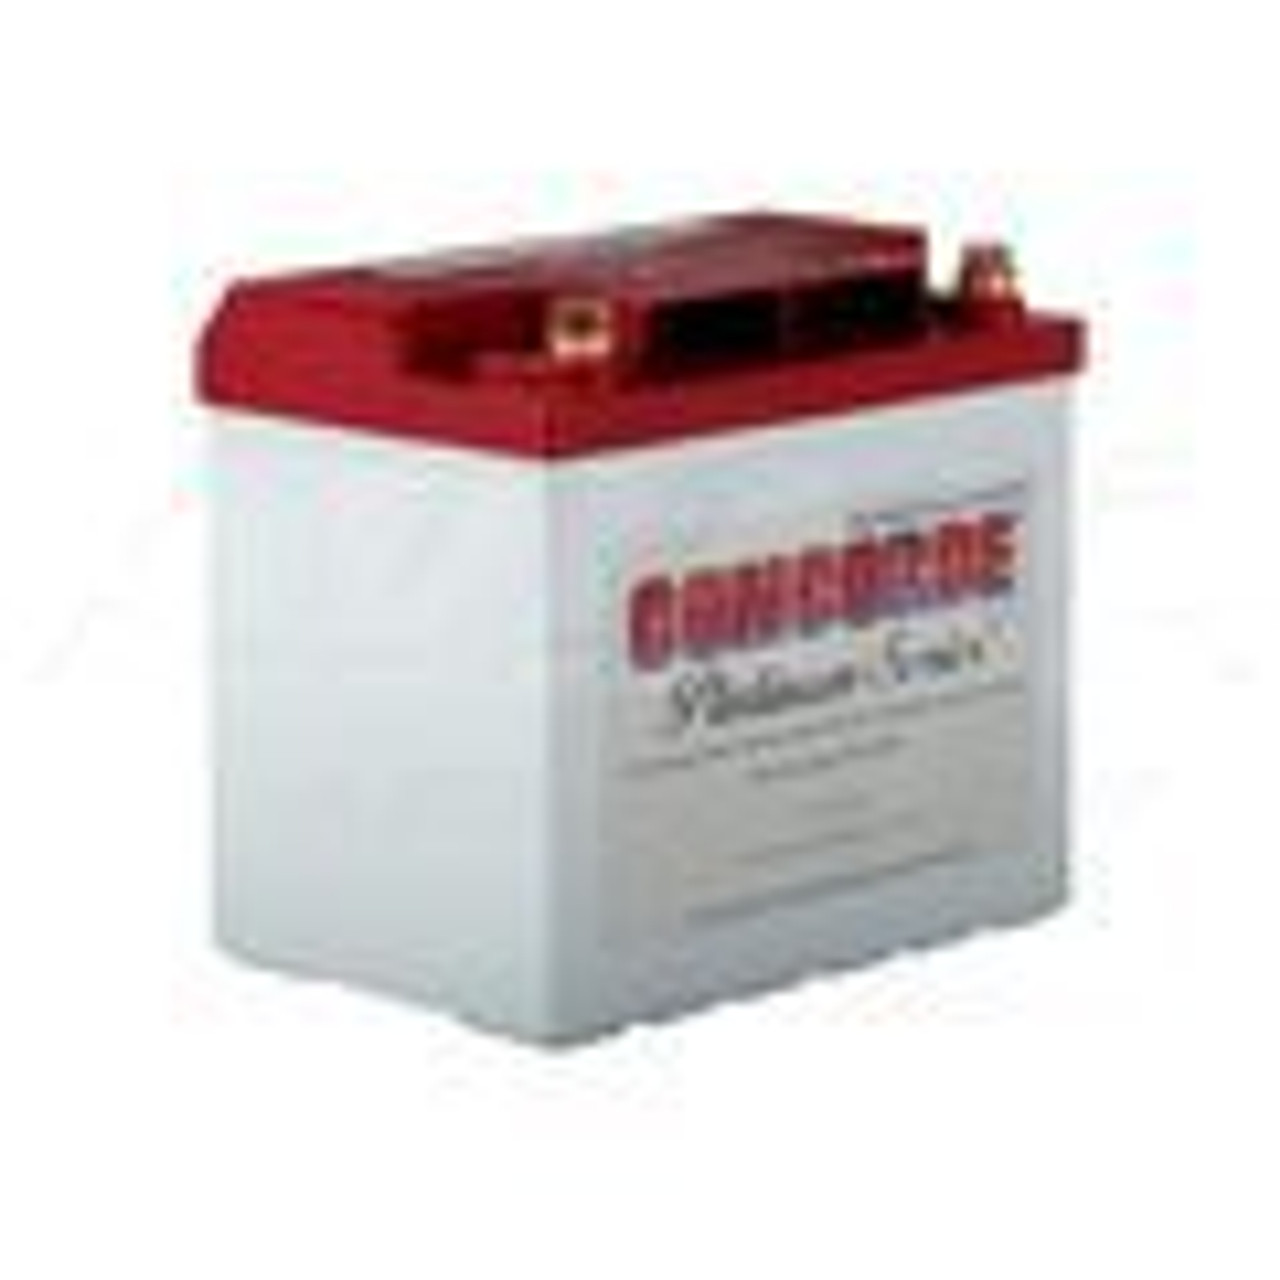 The RG35AXC is a Concorde® Platinum Series® Aircraft Battery. The Platinum Series® is comprised of premium hand made AGM Aircraft Batteries with excess power for many applications. RG-35AXC has the highest cranking power and capacity in the 35 Group.